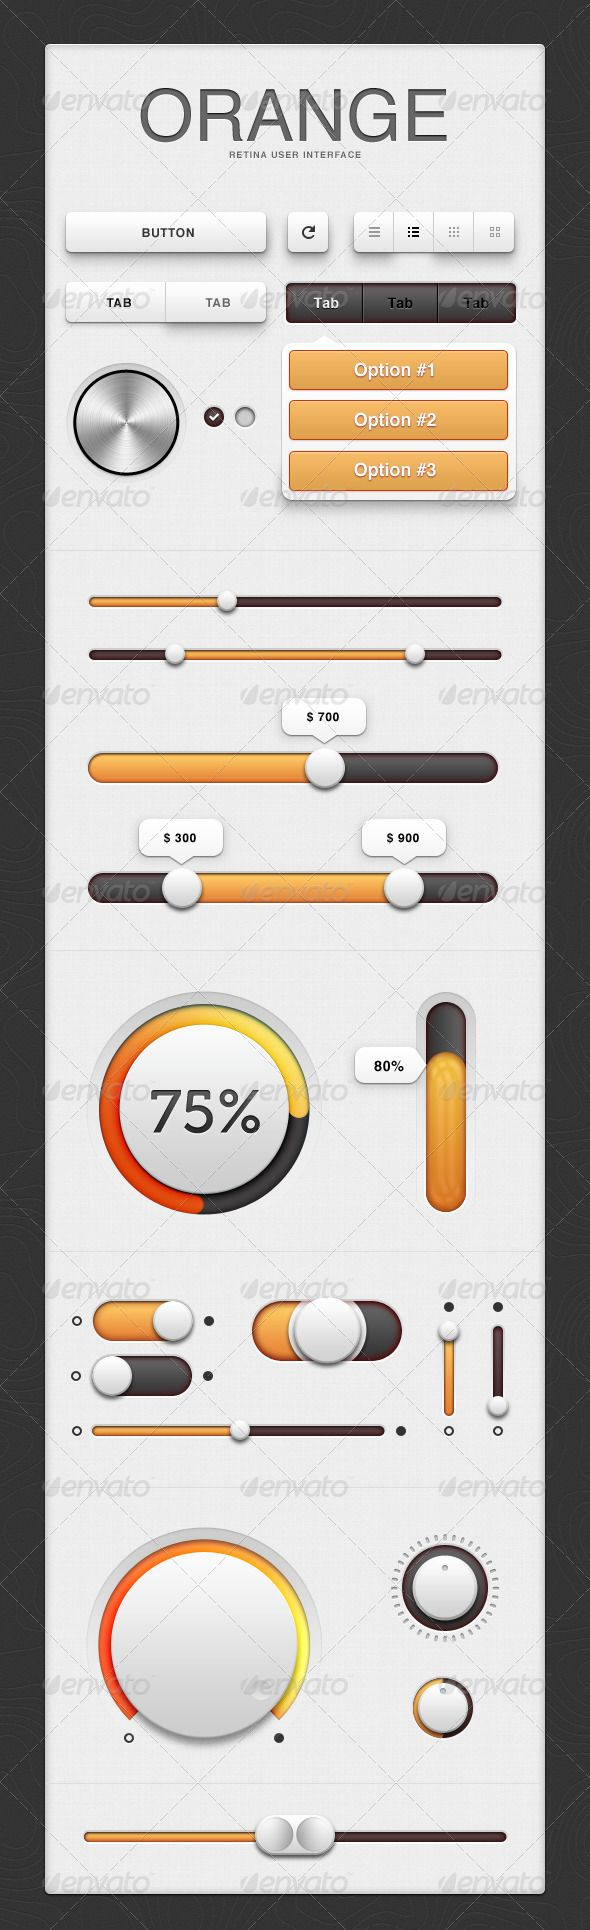 User Interface - Orange - GraphicRiver Item for Sale